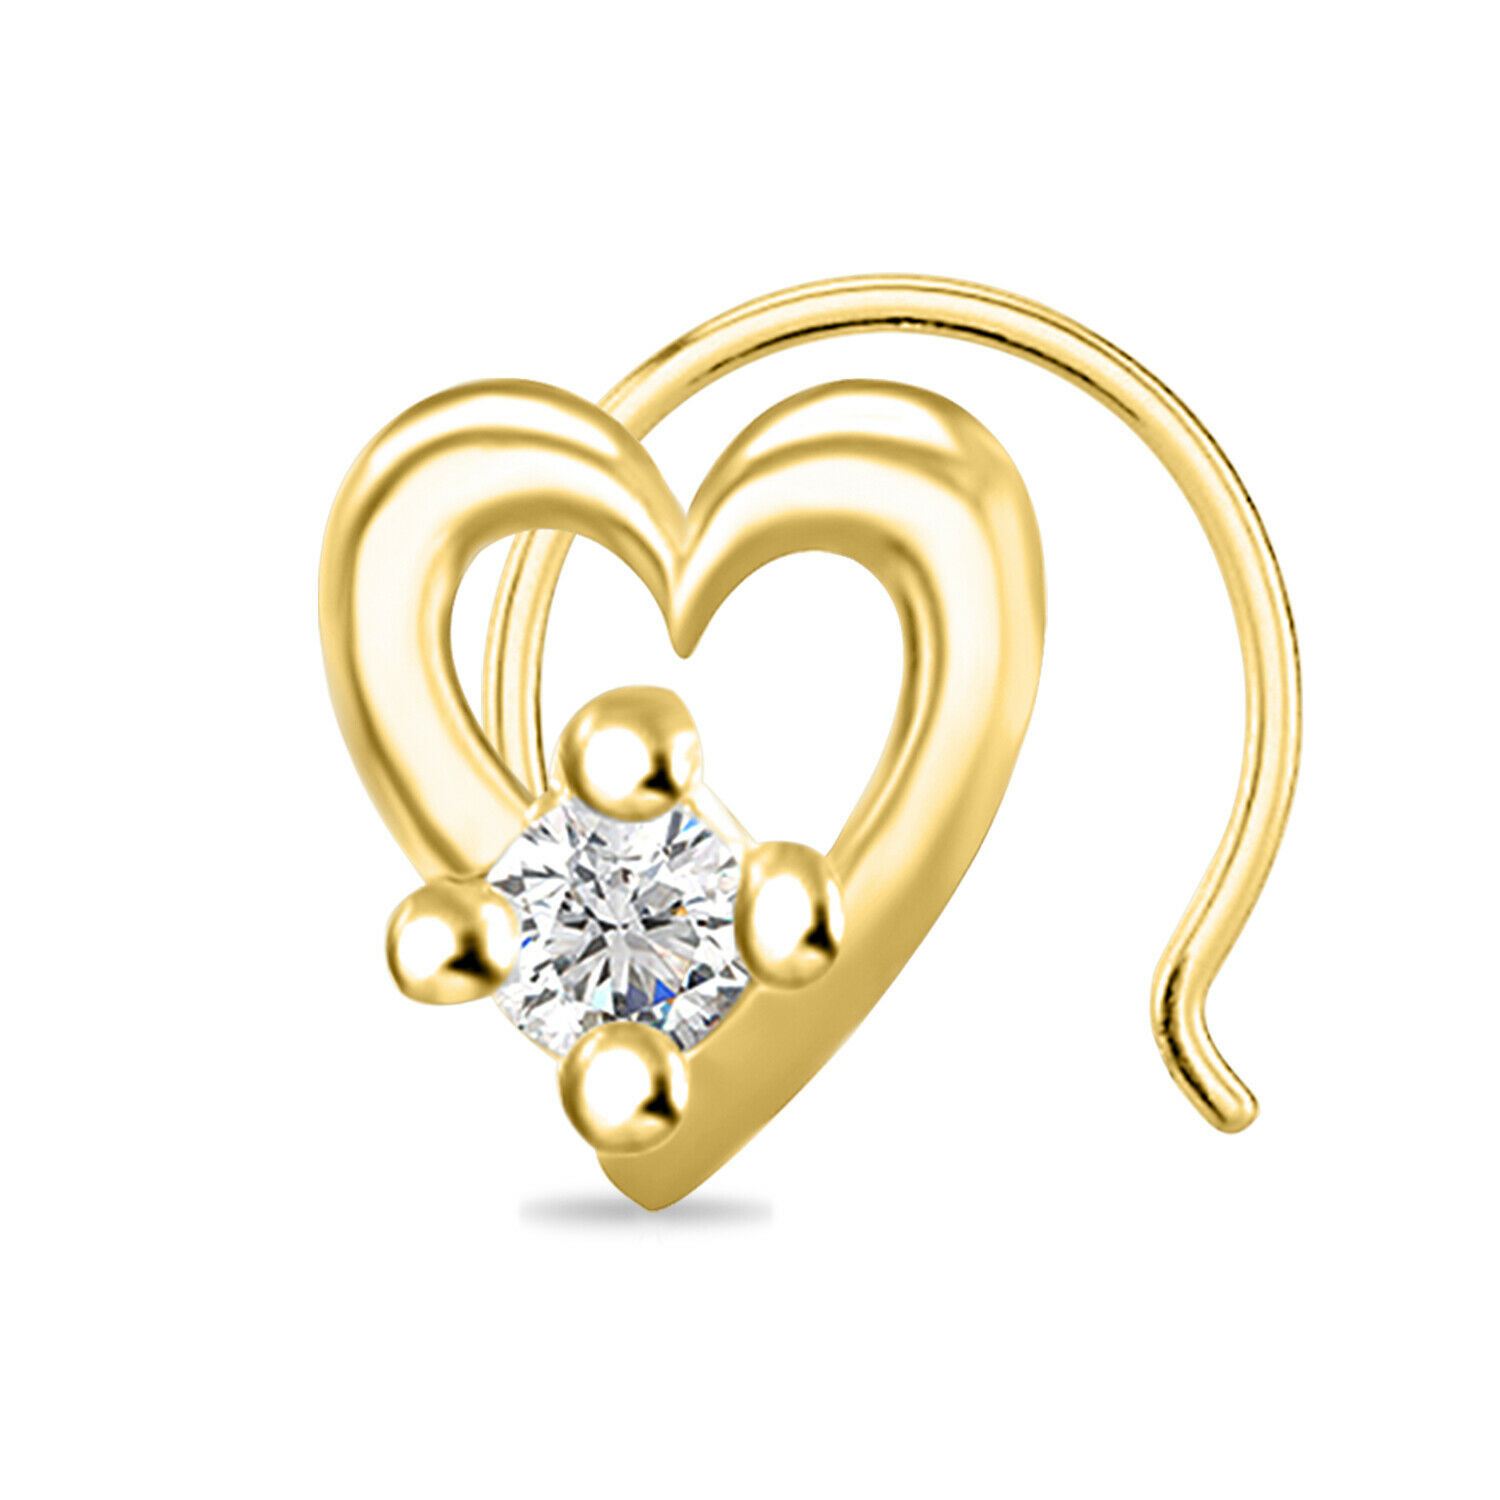 Primary image for 14k Yellow Gold Finish 0.84 ct Round Cut Diamond Heart Shape Solitaire Nose Pin